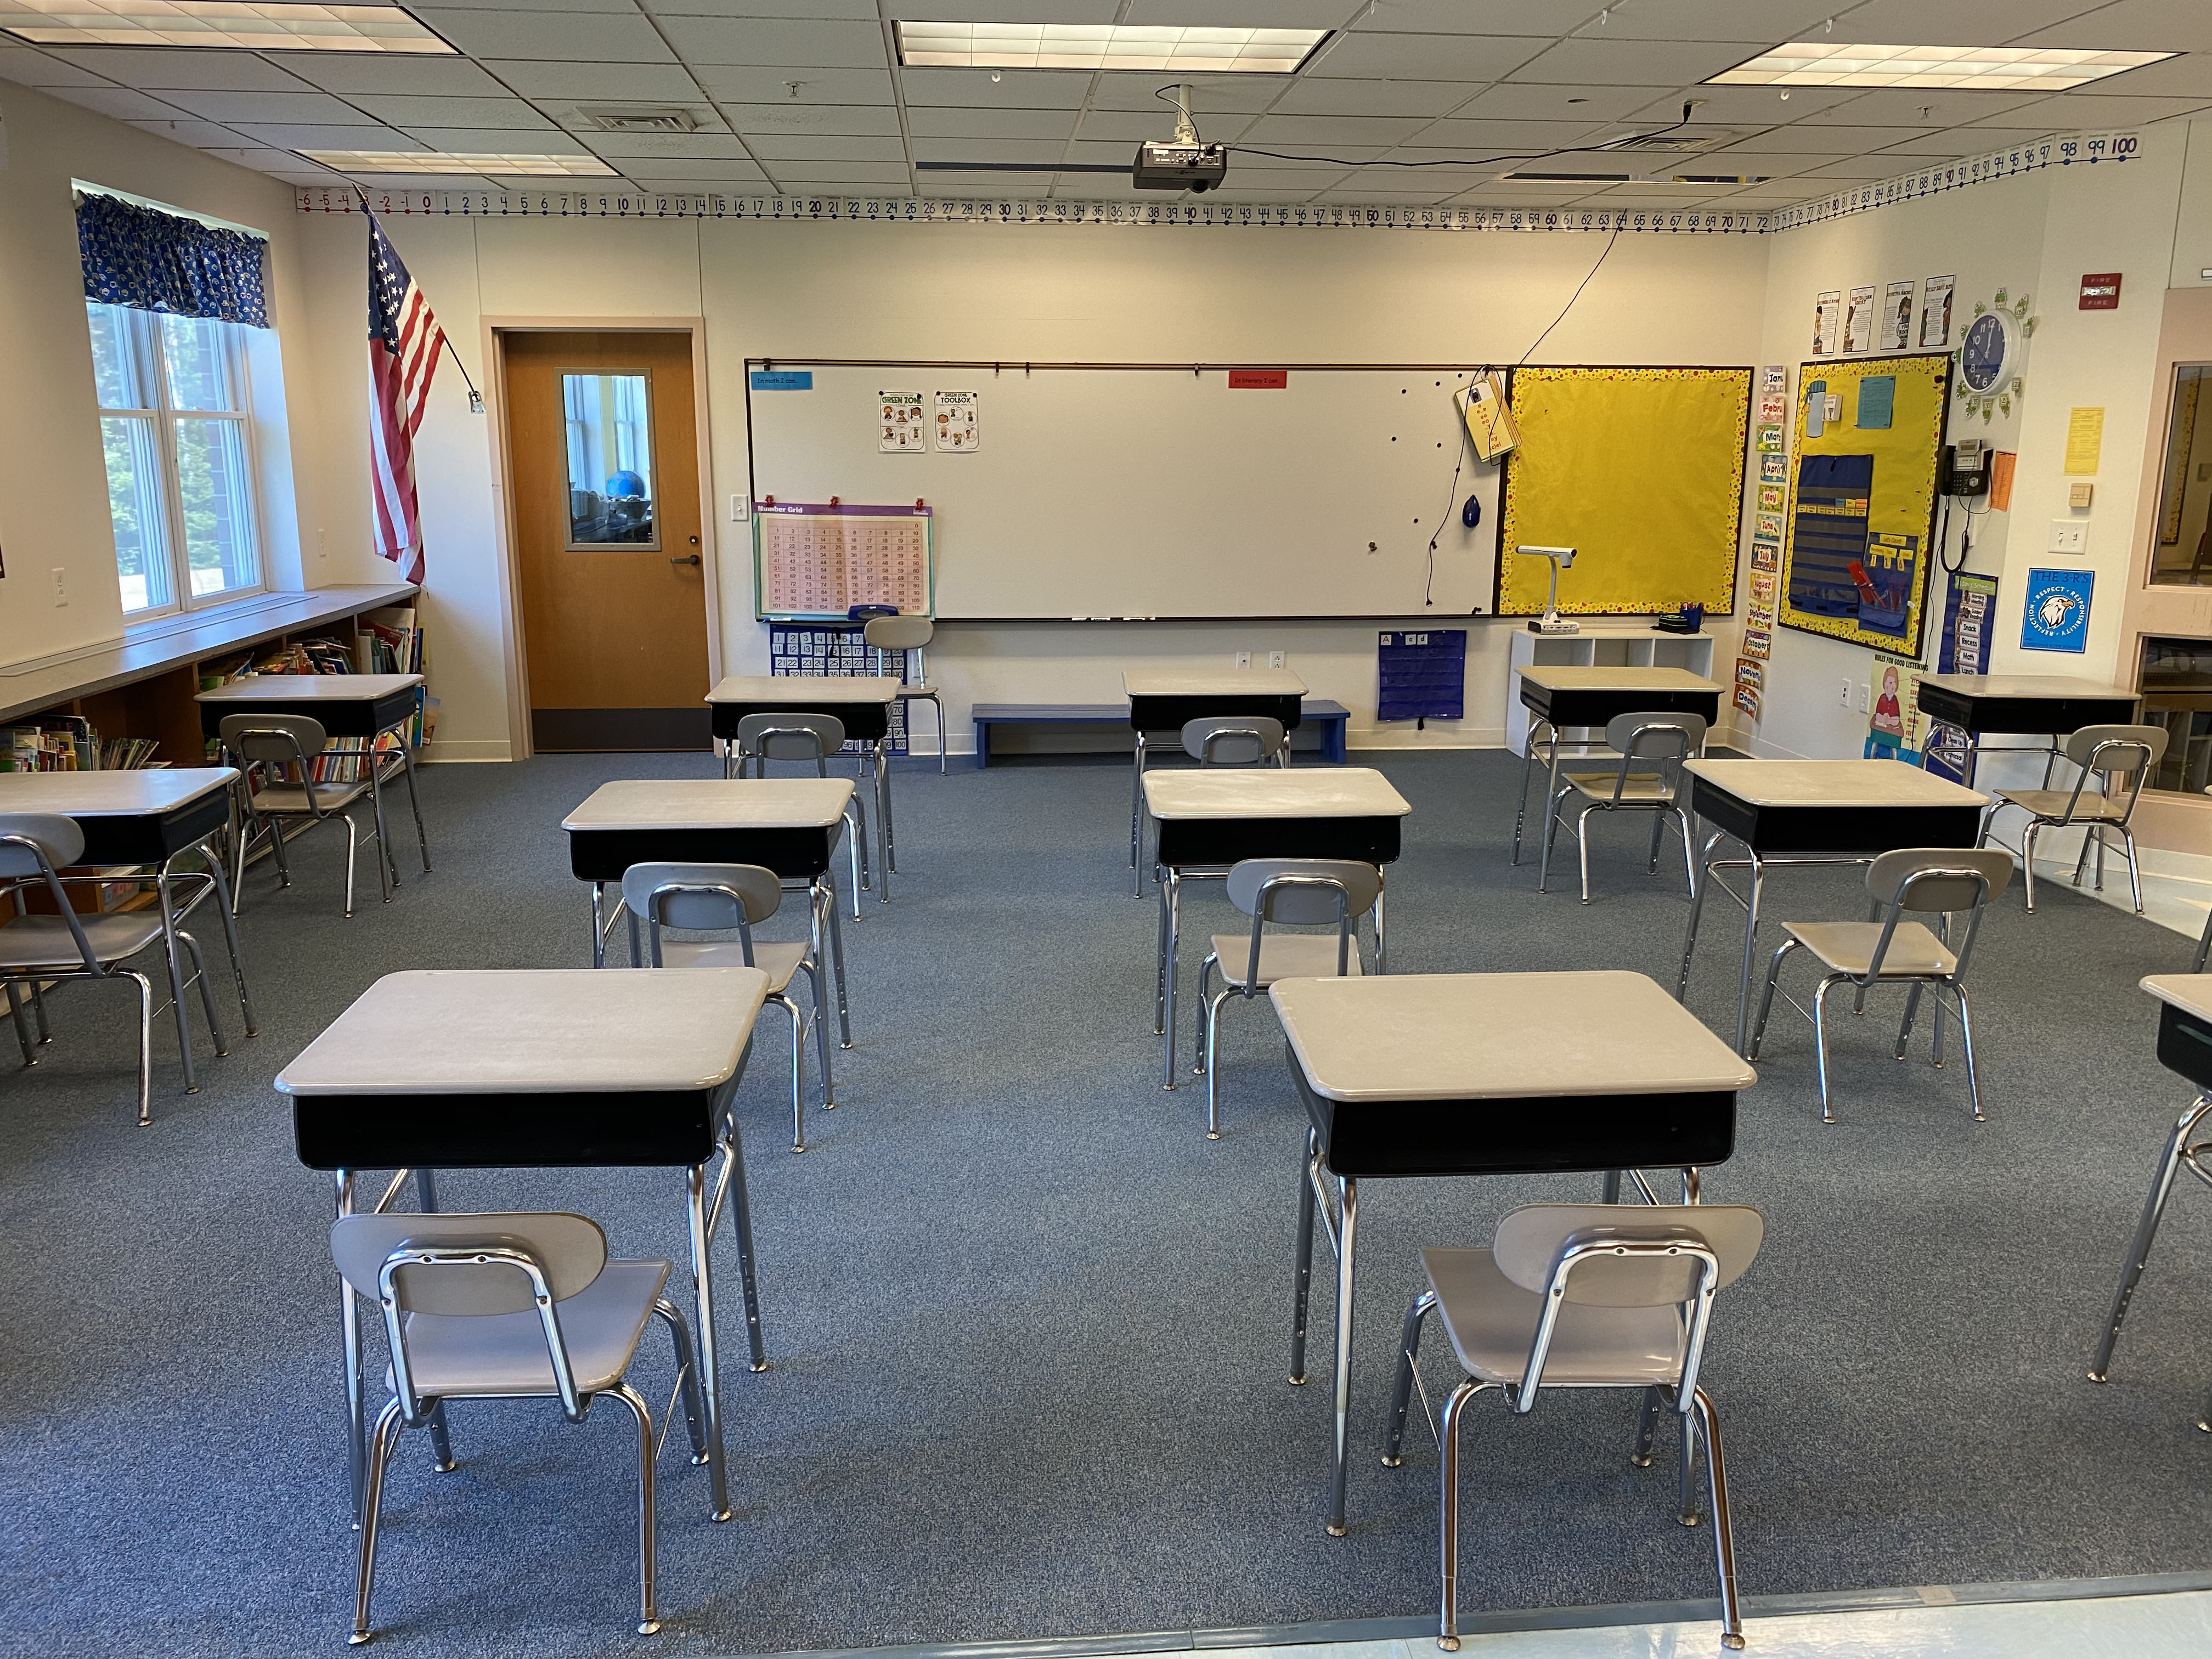 Physical distancing between desks in a classroom at Edgecomb Eddy School. The school will begin the year with in-person instruction four days a week and remote instruction on Wednesday. (Photo courtesy Ira Michaud)